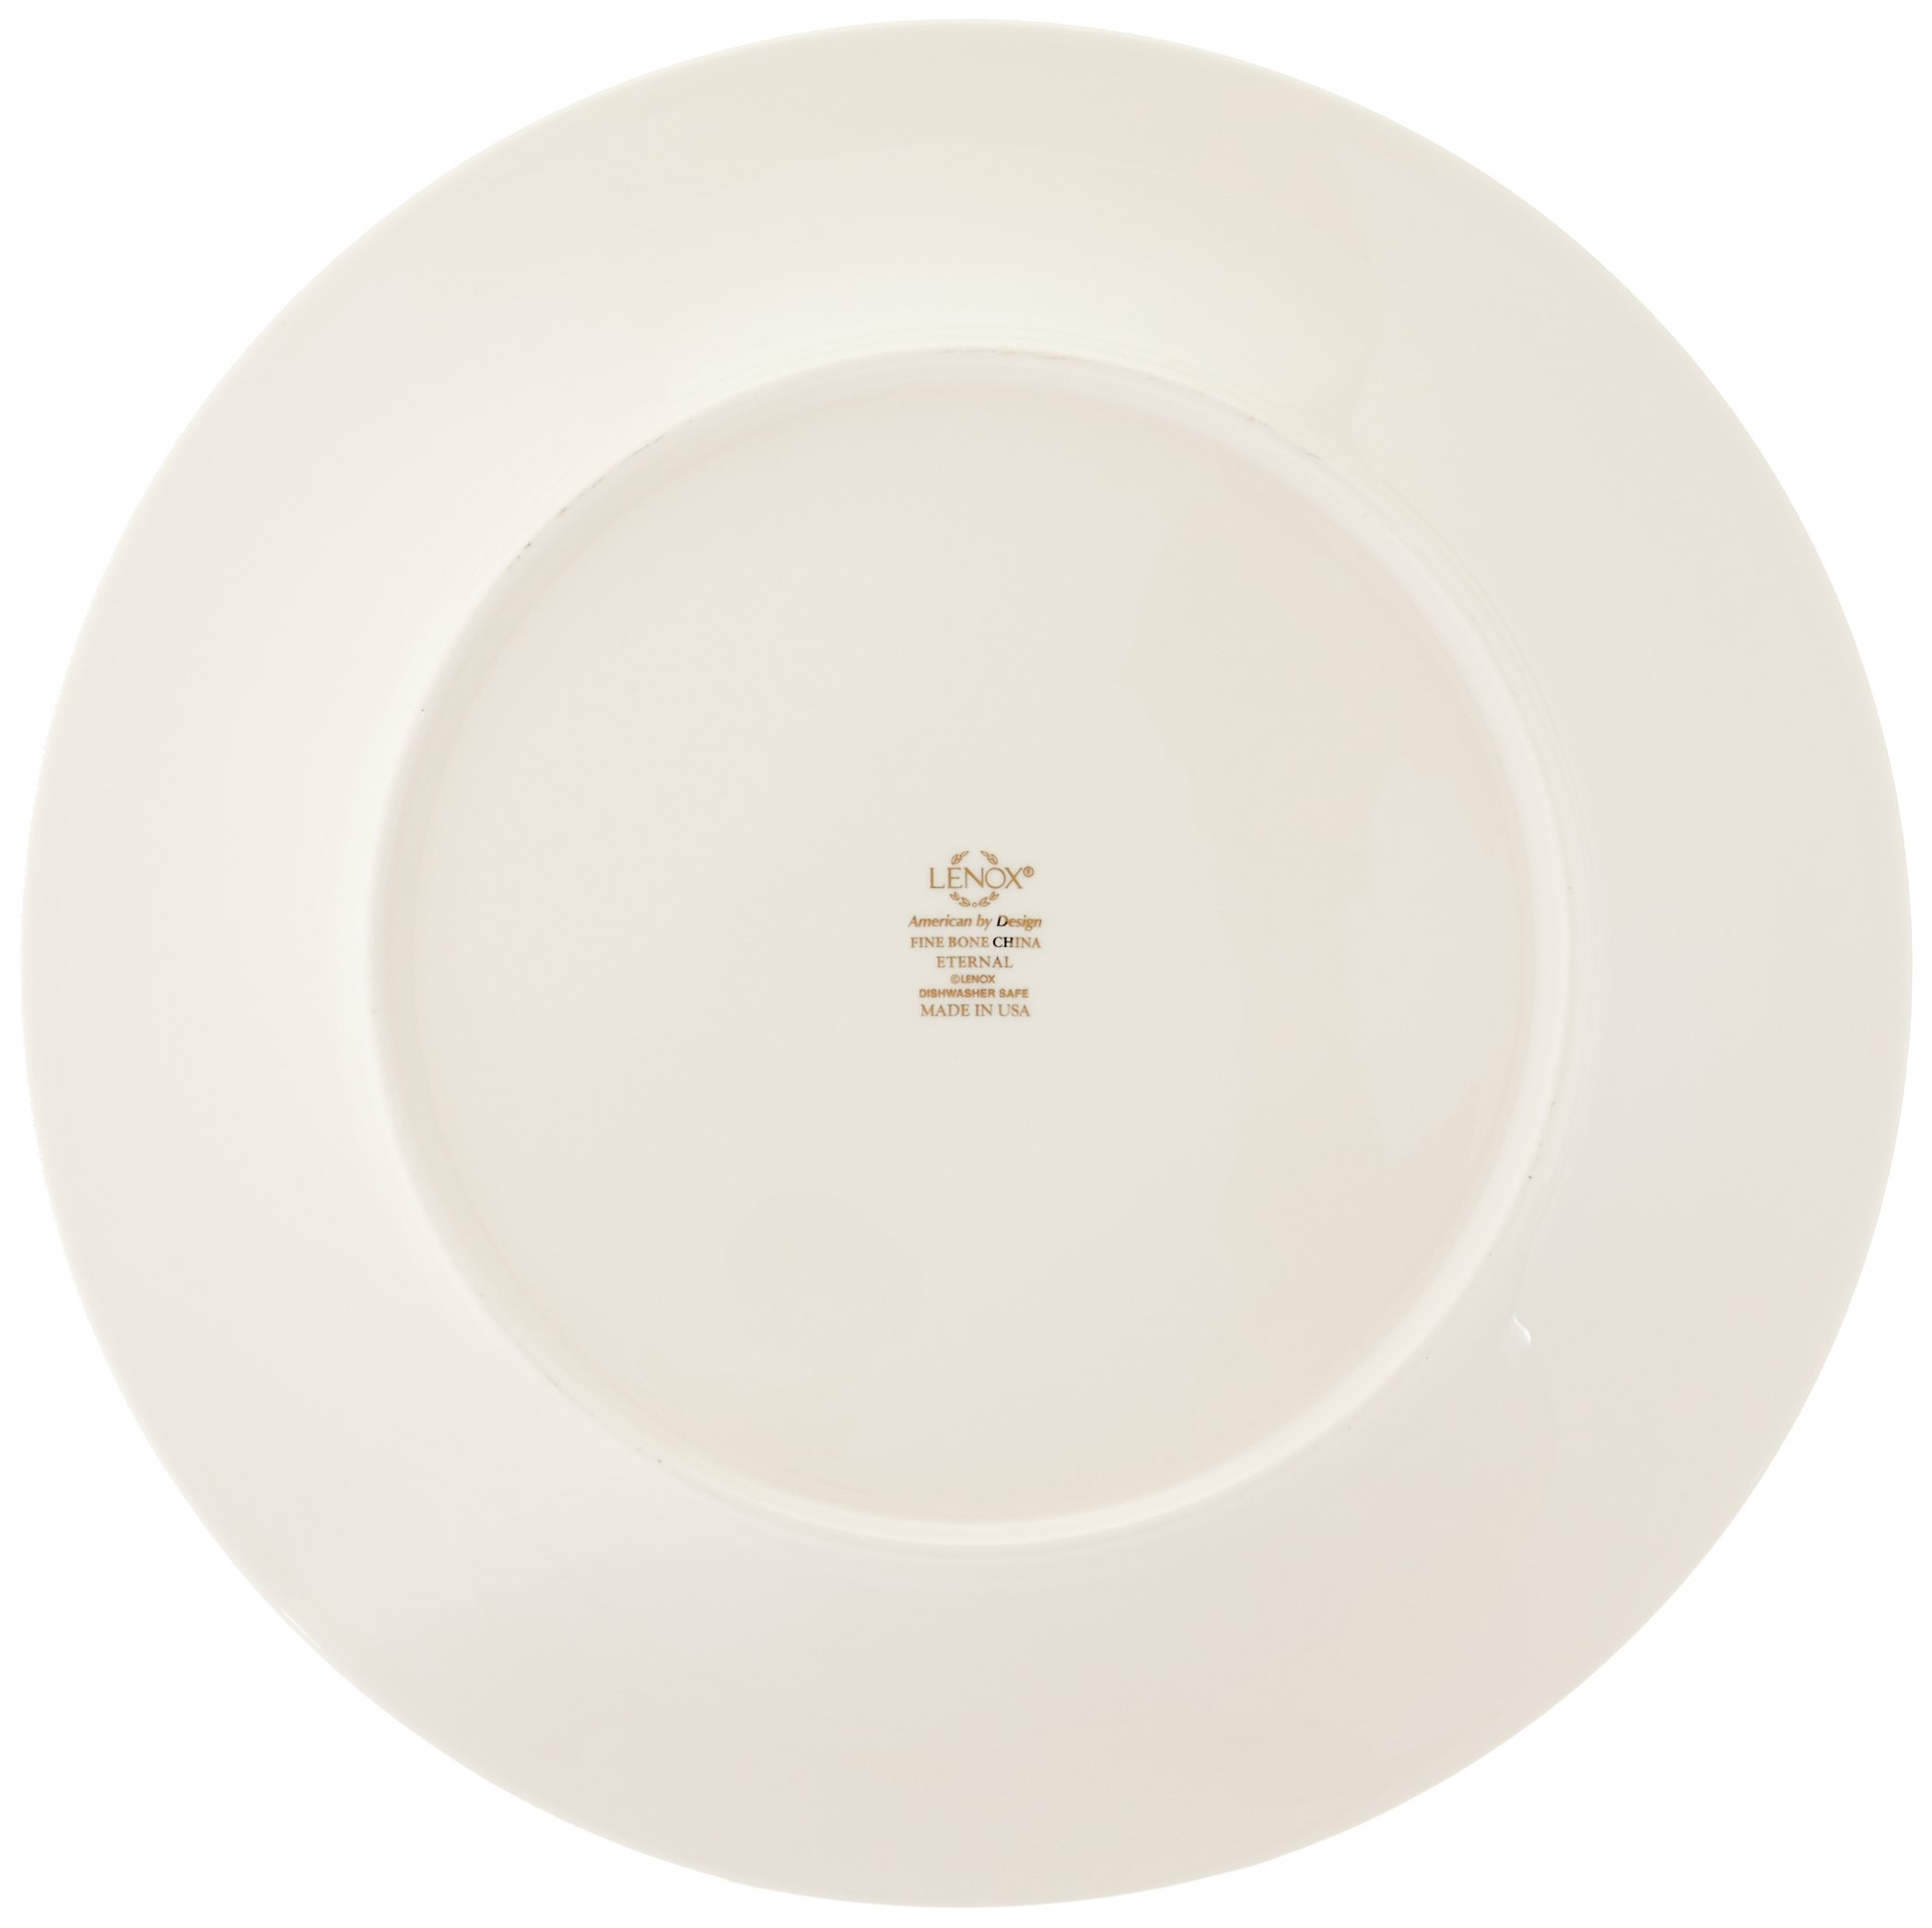 Lenox Eternal Gold-Banded Fine China 5-Piece Place Setting, Service for 1 by Lenox (Image #5)